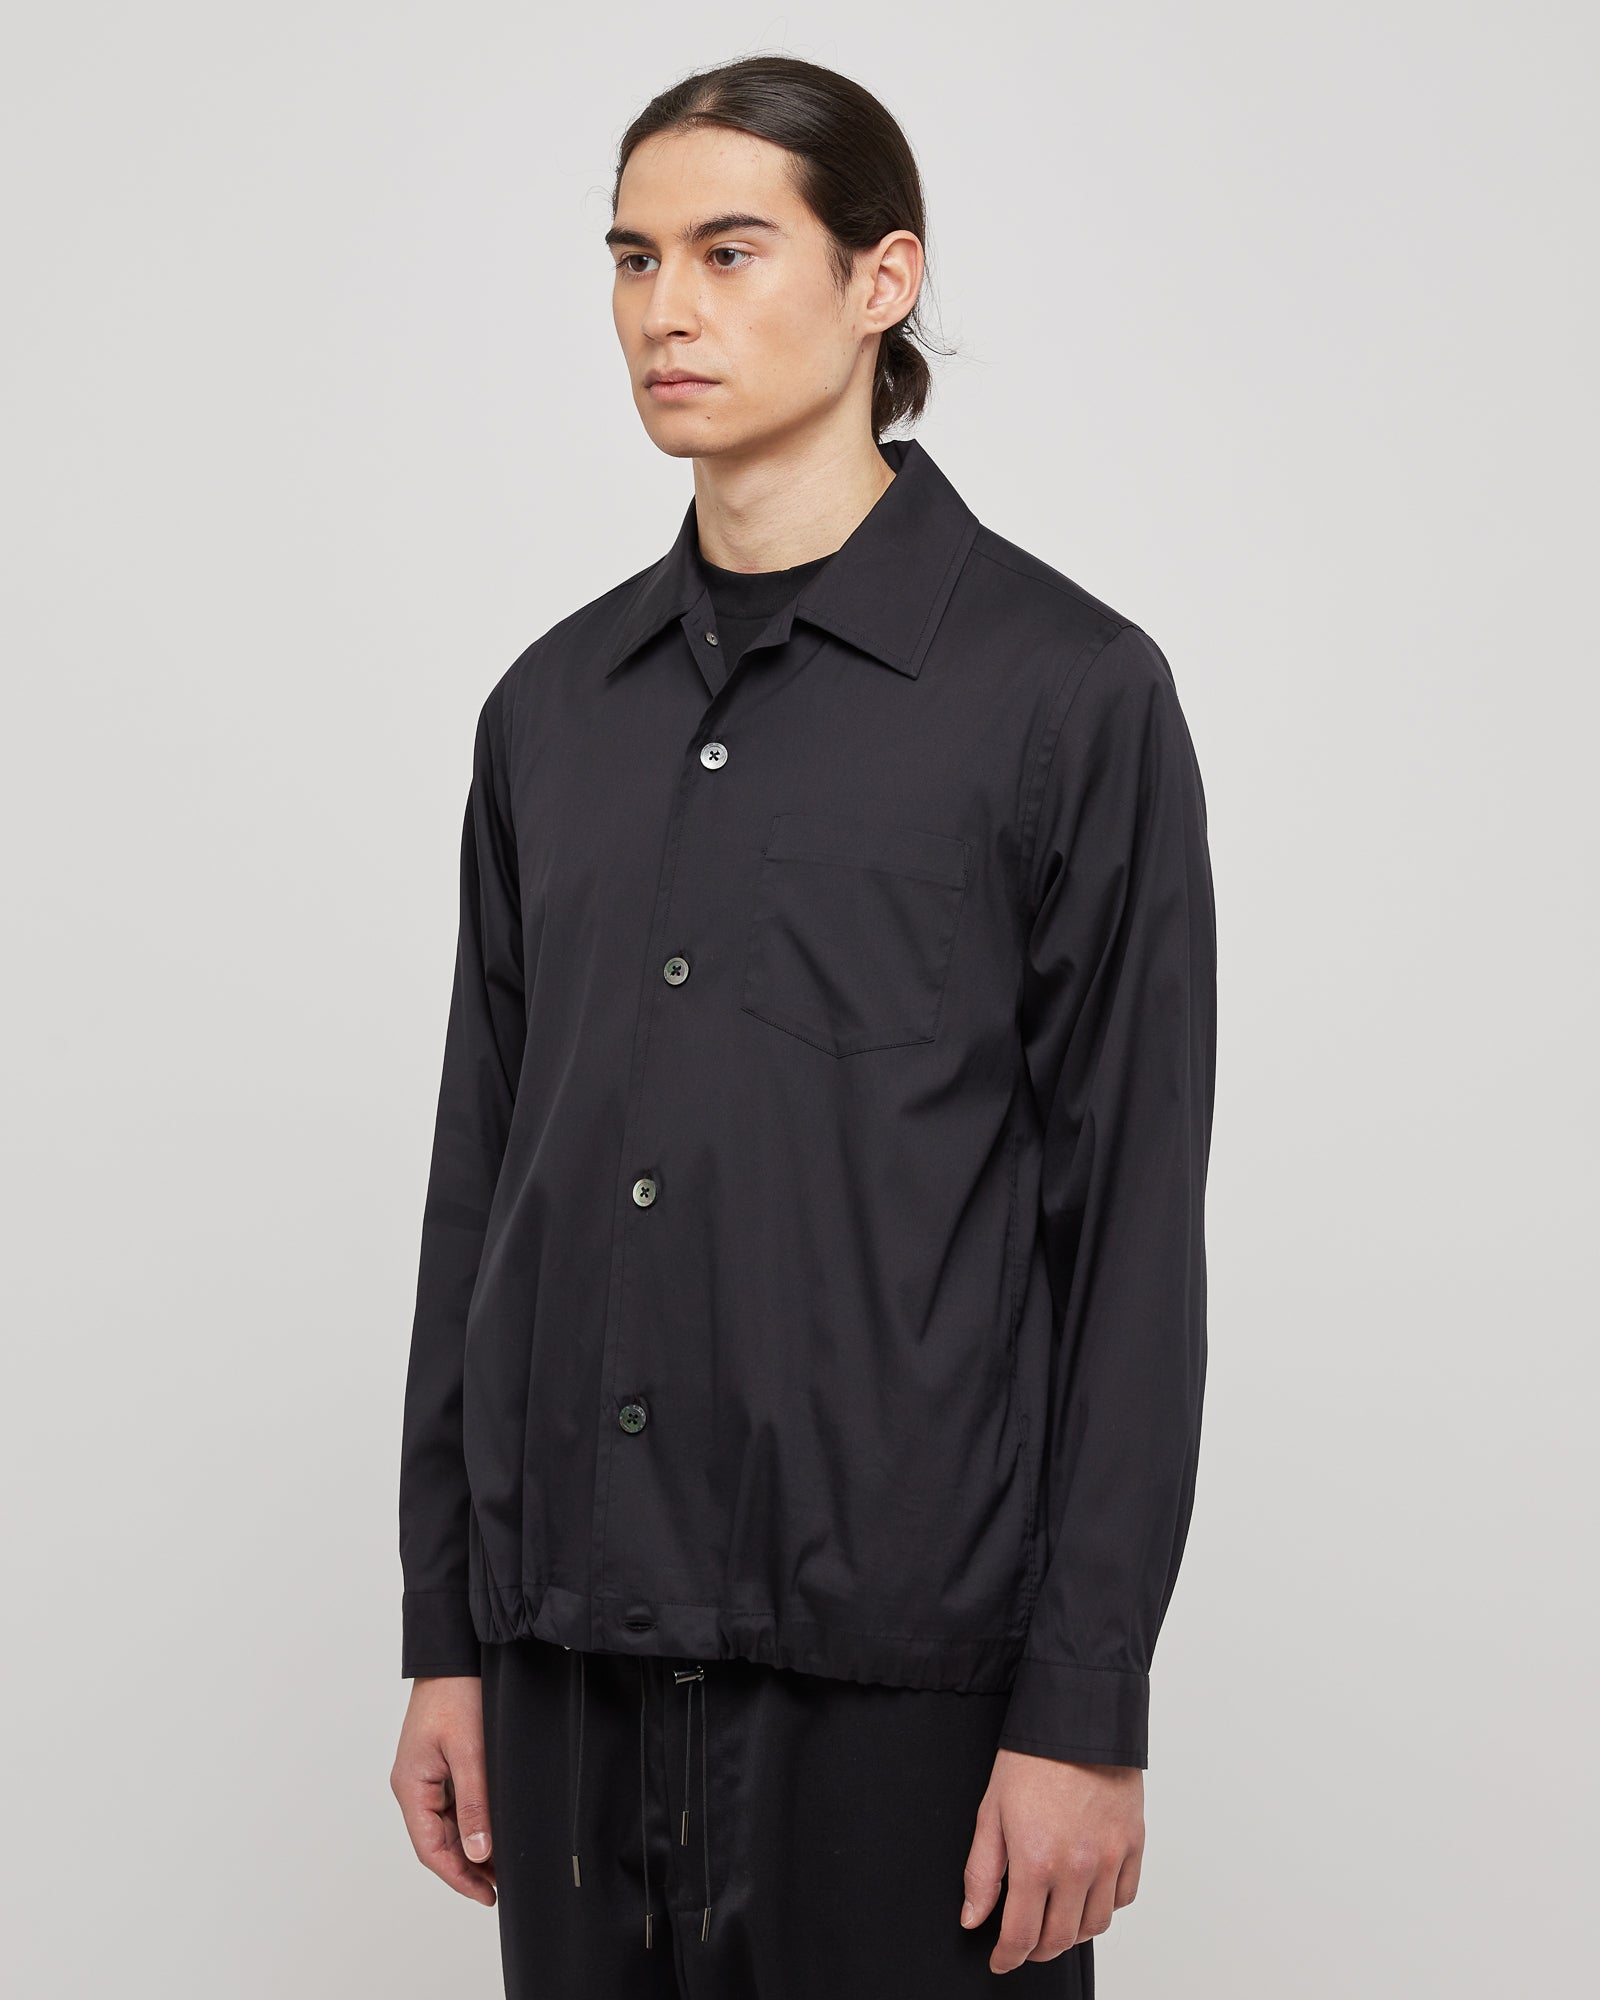 L/S Pocket Shirt in Black